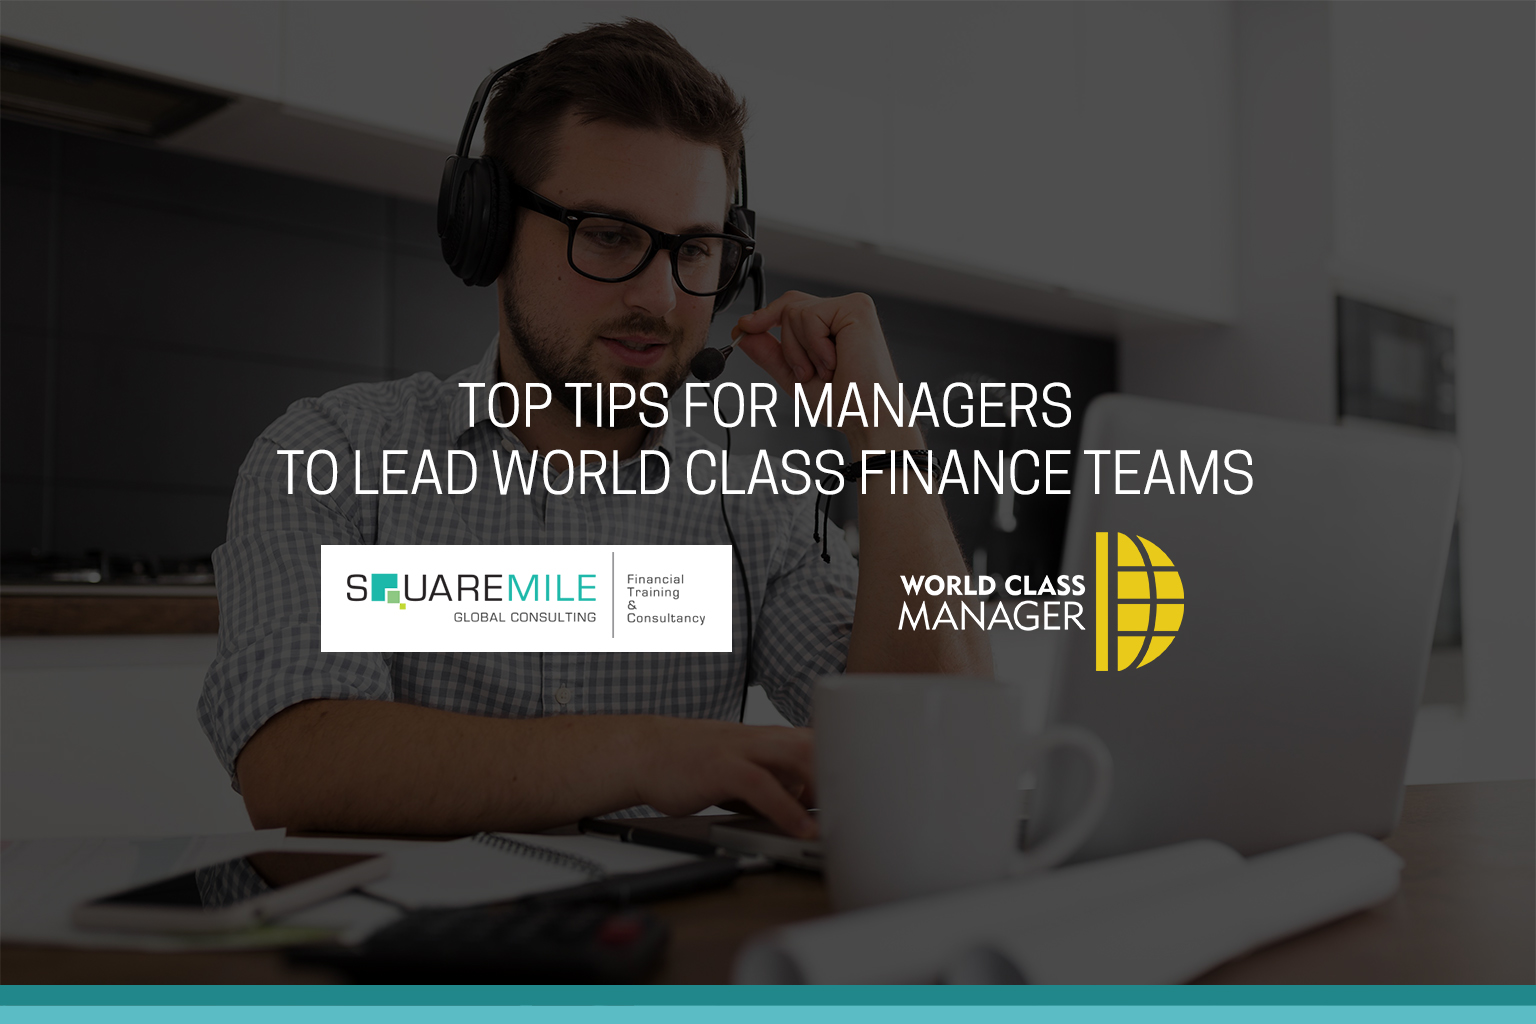 Top Tips for Managers to lead World Class Finance Teams